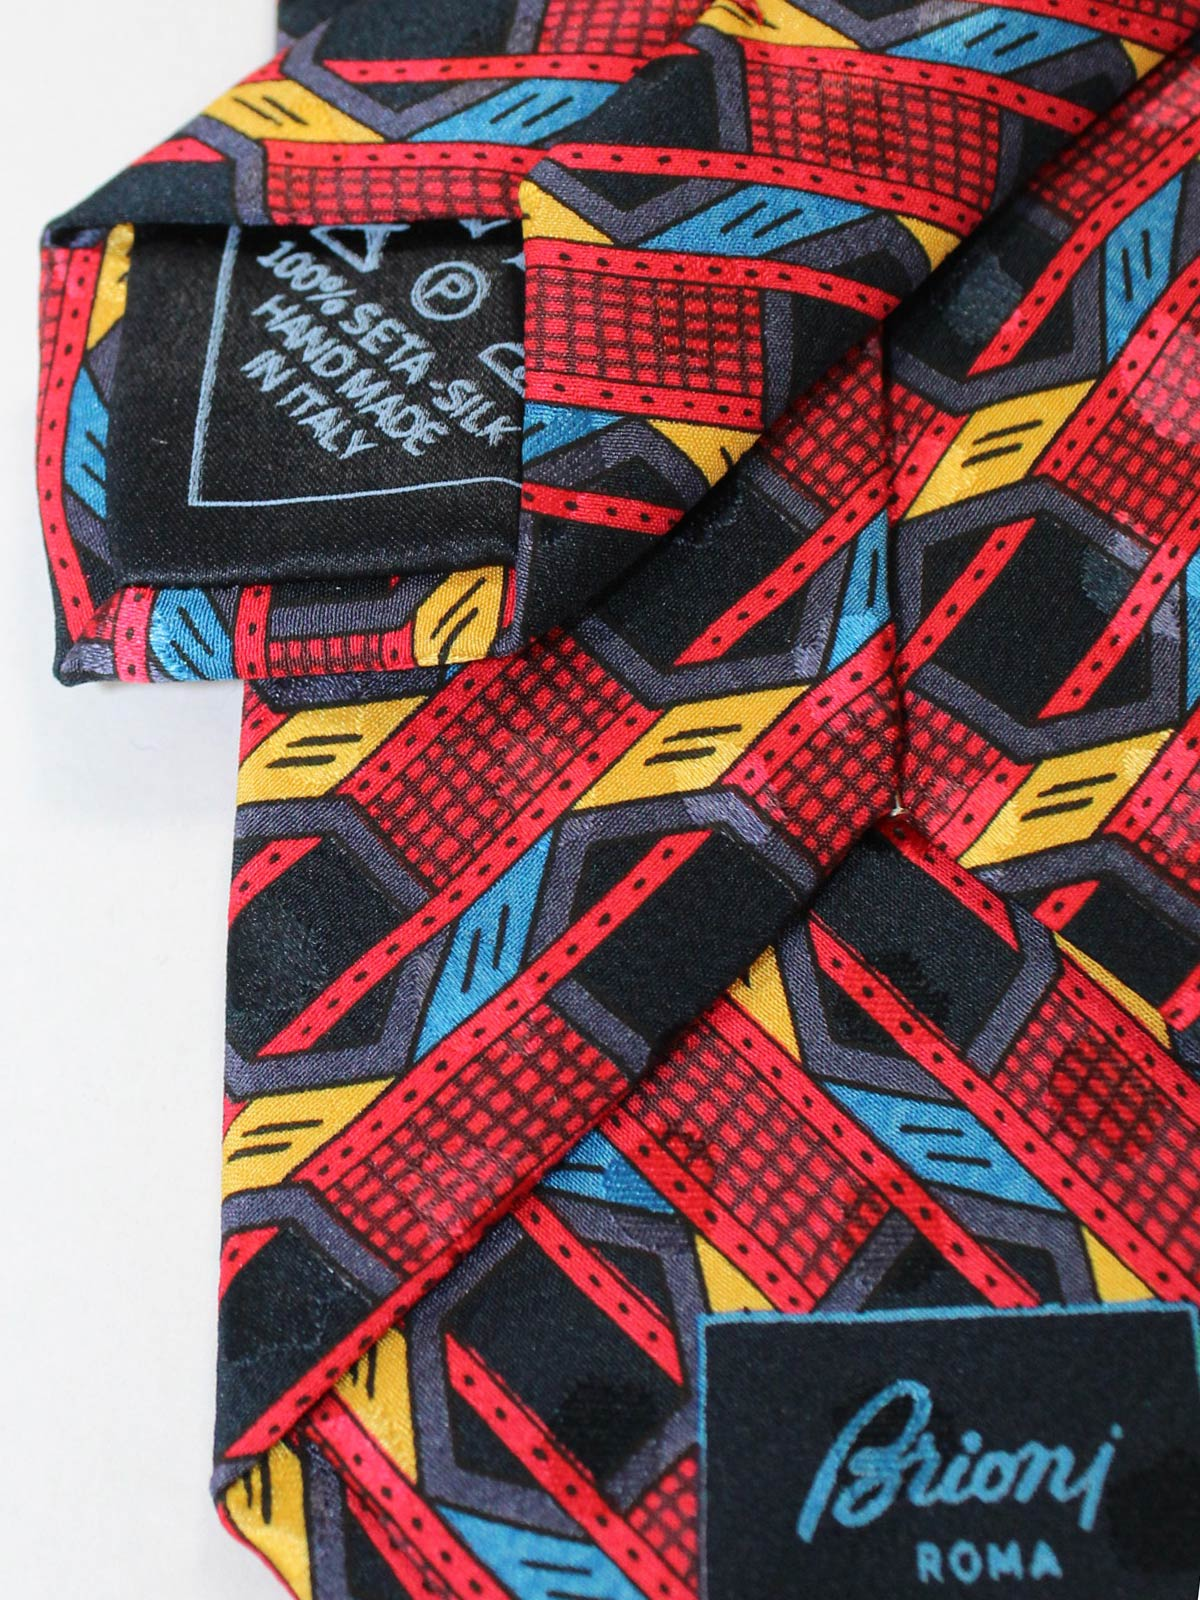 Brioni Silk Tie Red Black Royal Blue SALE